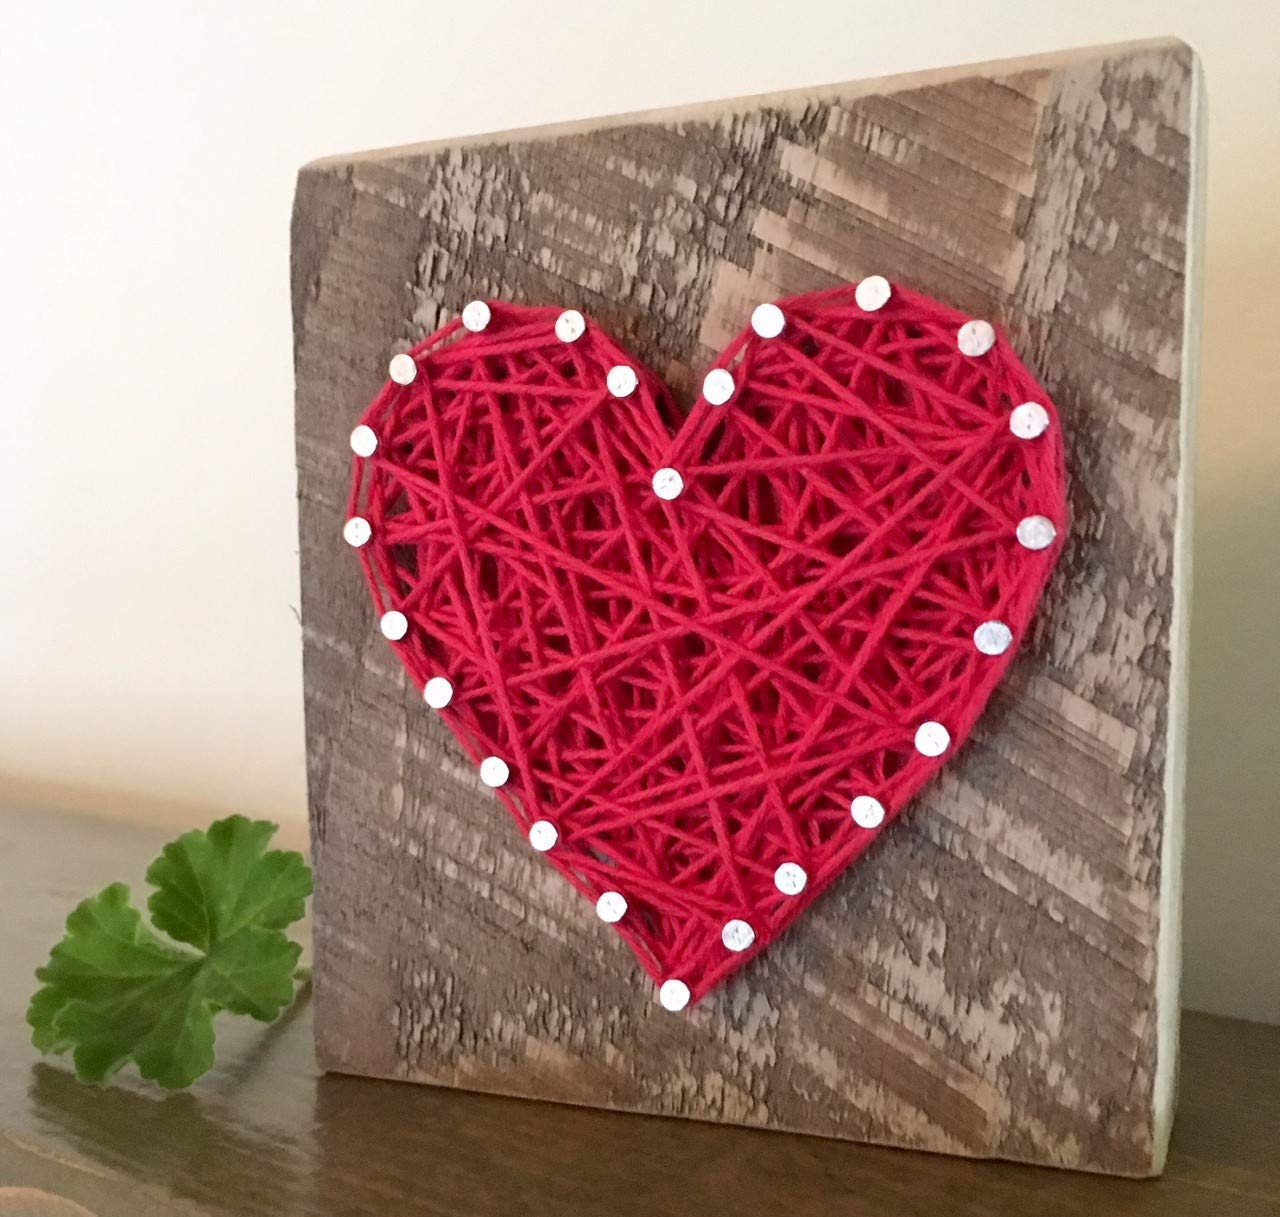 CDM product Sweet & small red string art heart block sign and gift. Great for Wedding favors, Anniversaries, housewarming, teachers, congratulations & just because gifts by Nail it Art. big image